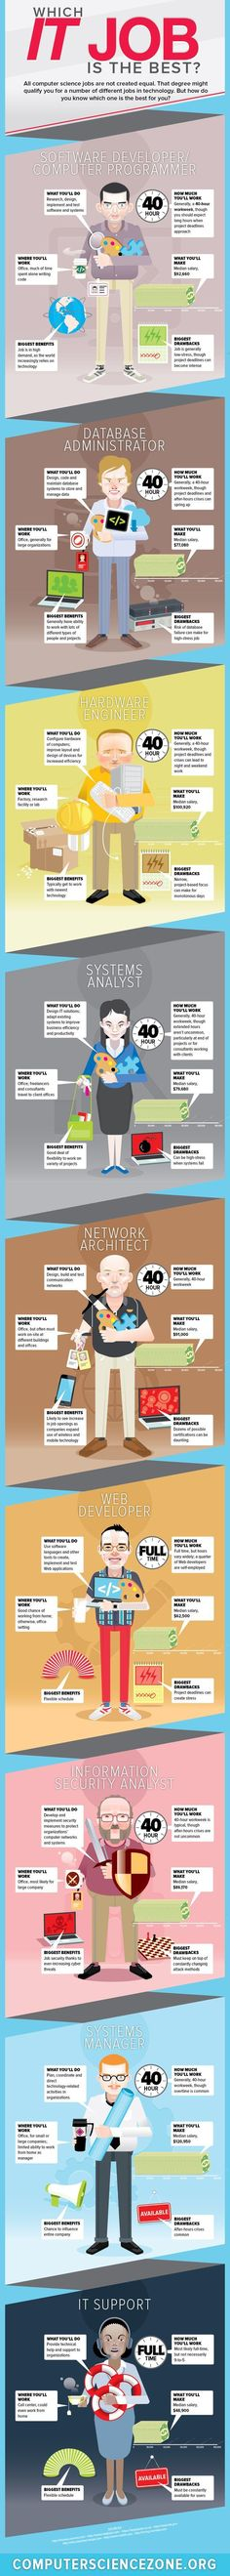 Which IT Job Is The Best? - #infographic